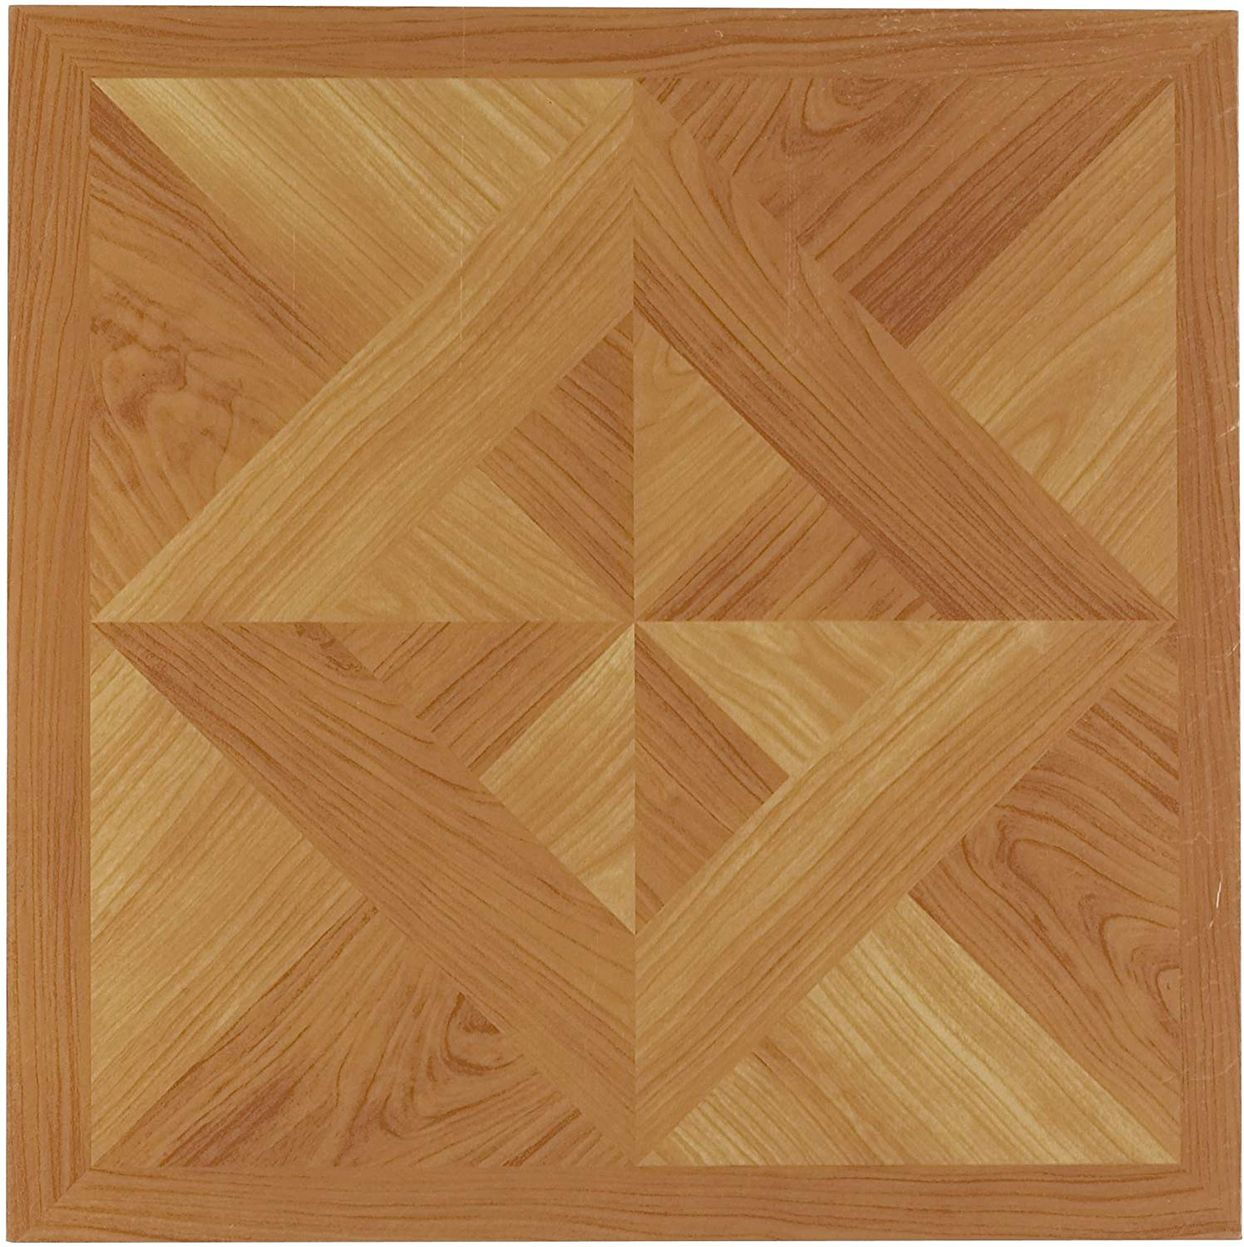 The Prettiest Peel And Stick Tiles To Instantly Upgrade Your Flooring In 2020 Vinyl Flooring Flooring Tile Floor